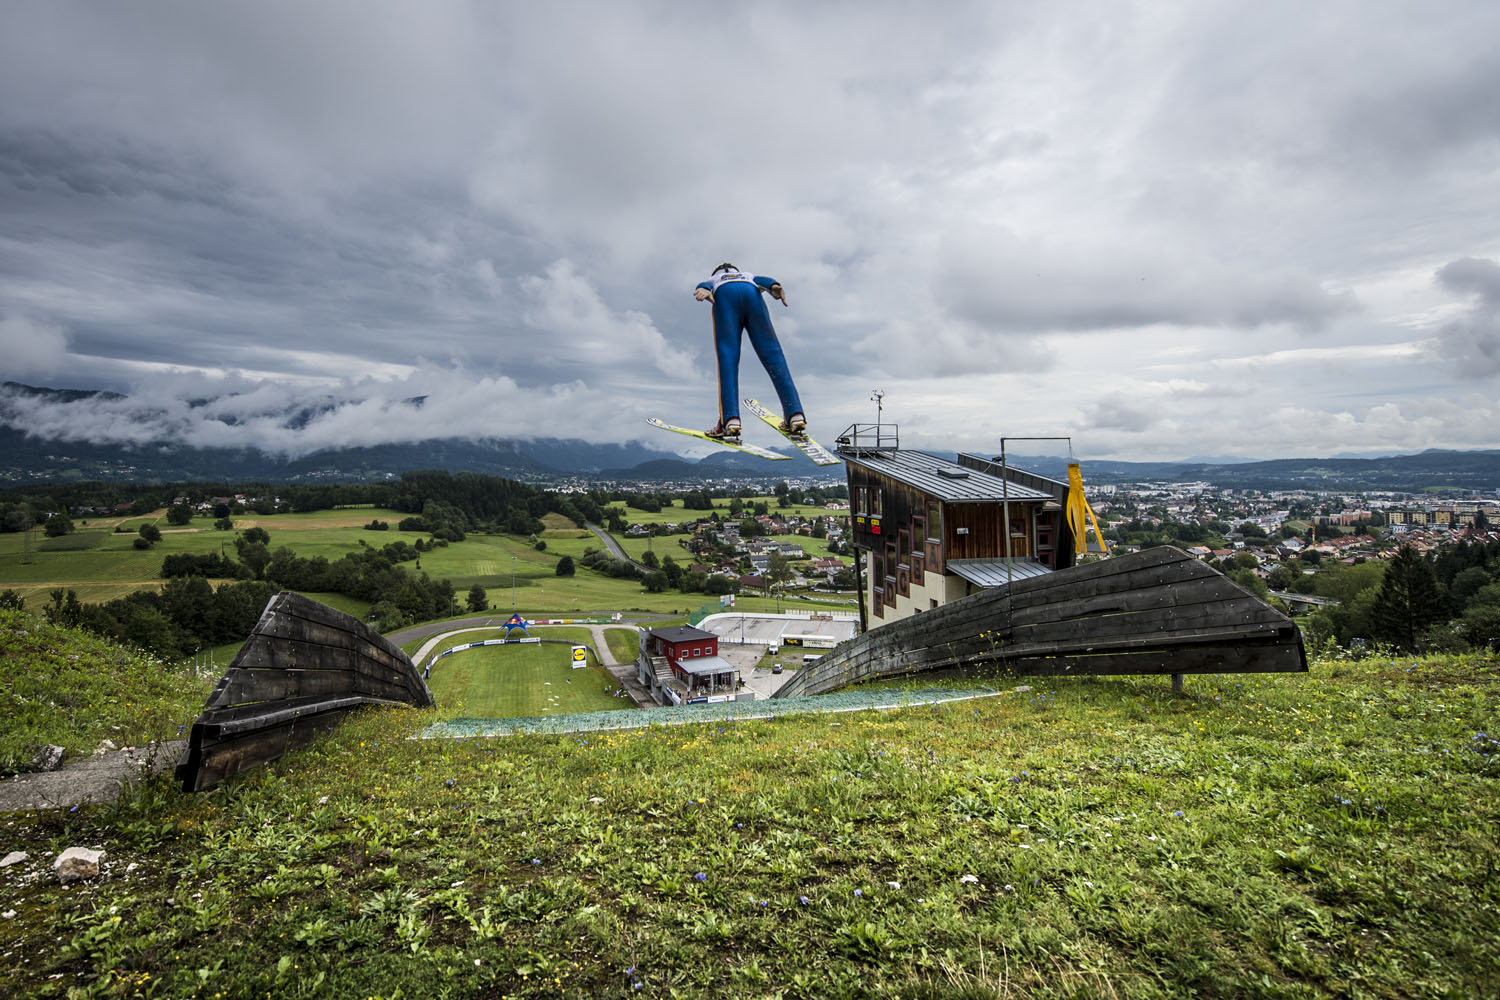 A skier takes the leap during the Goldi Sommercamp in Villach, Austria.